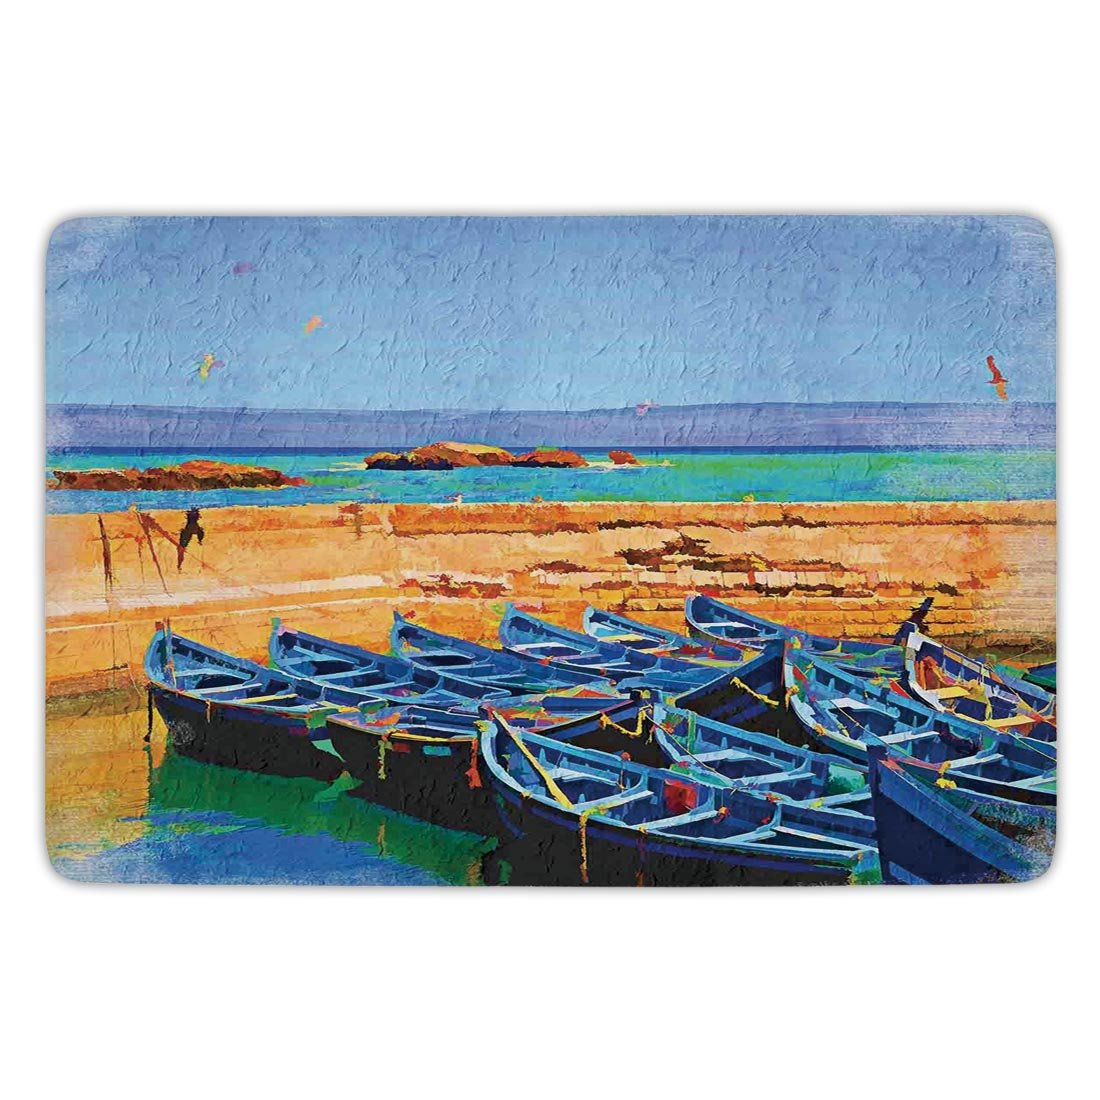 Bathroom Bath Rug Kitchen Floor Mat Carpet,Country Decor,Sea Scenery with Gulls and Traditional Fishing Boats on the Shore in the Village Island,Cream Blue,Flannel Microfiber Non-slip Soft Absorbent